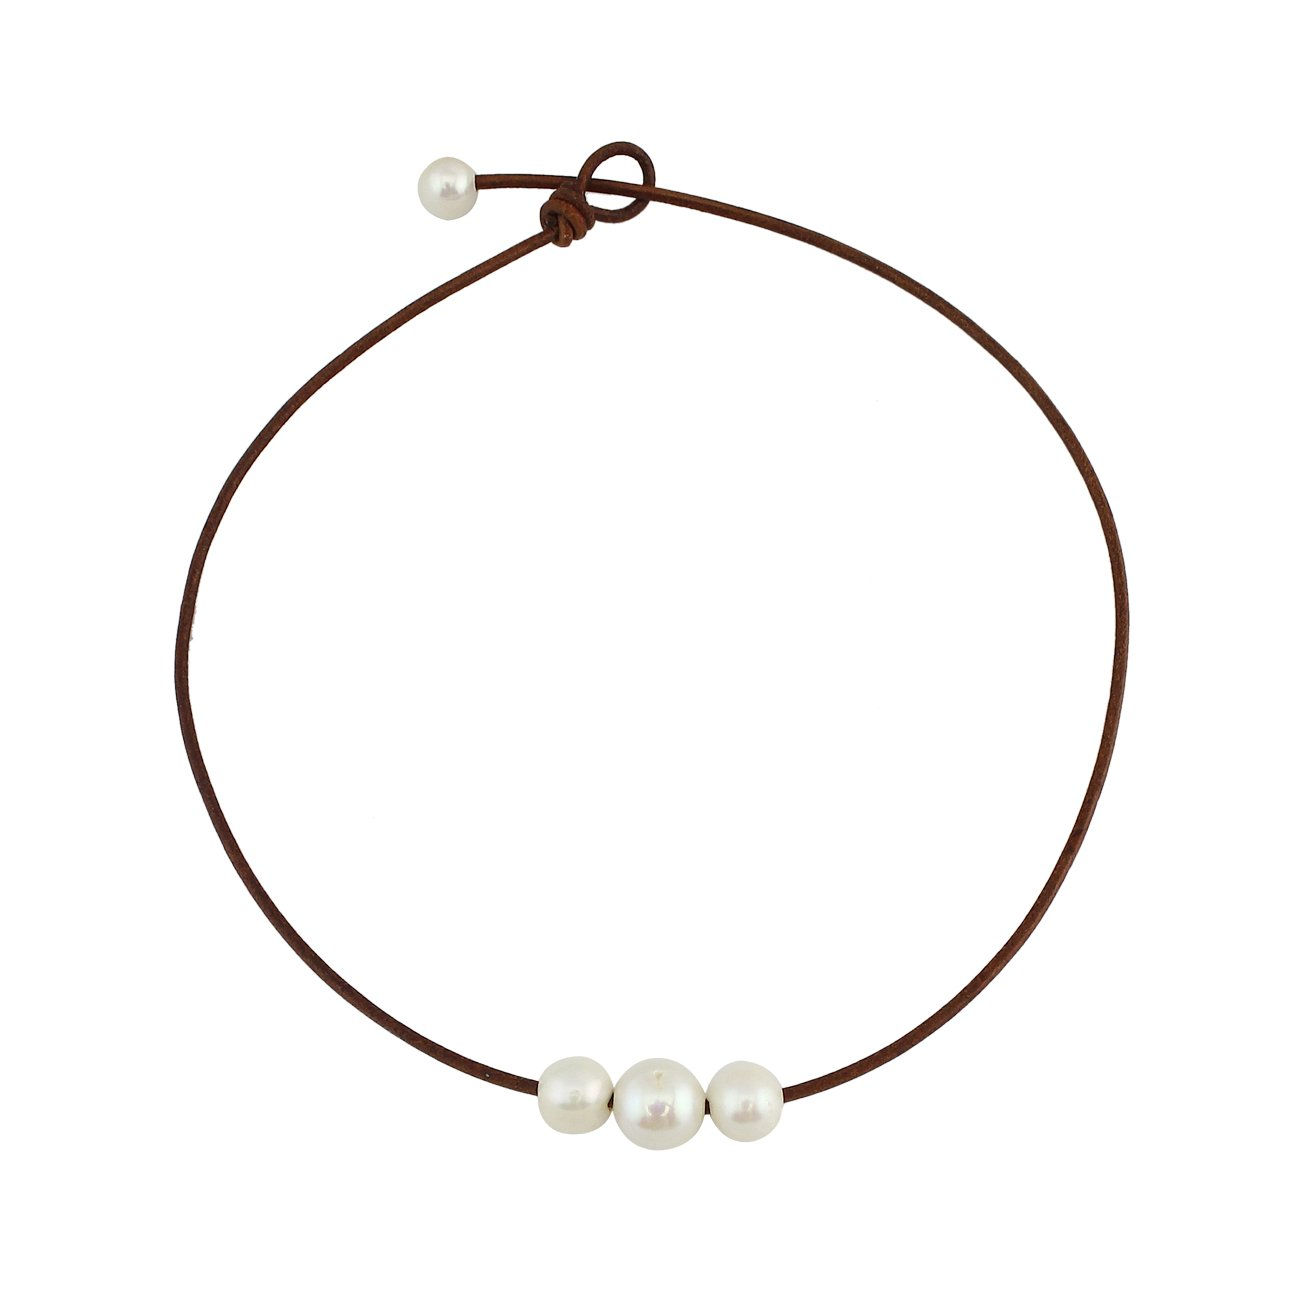 16'' Orange Brown Handmade 3 Pearl Choker Necklace Beads on Genuine Leather Cord 4 Size Available